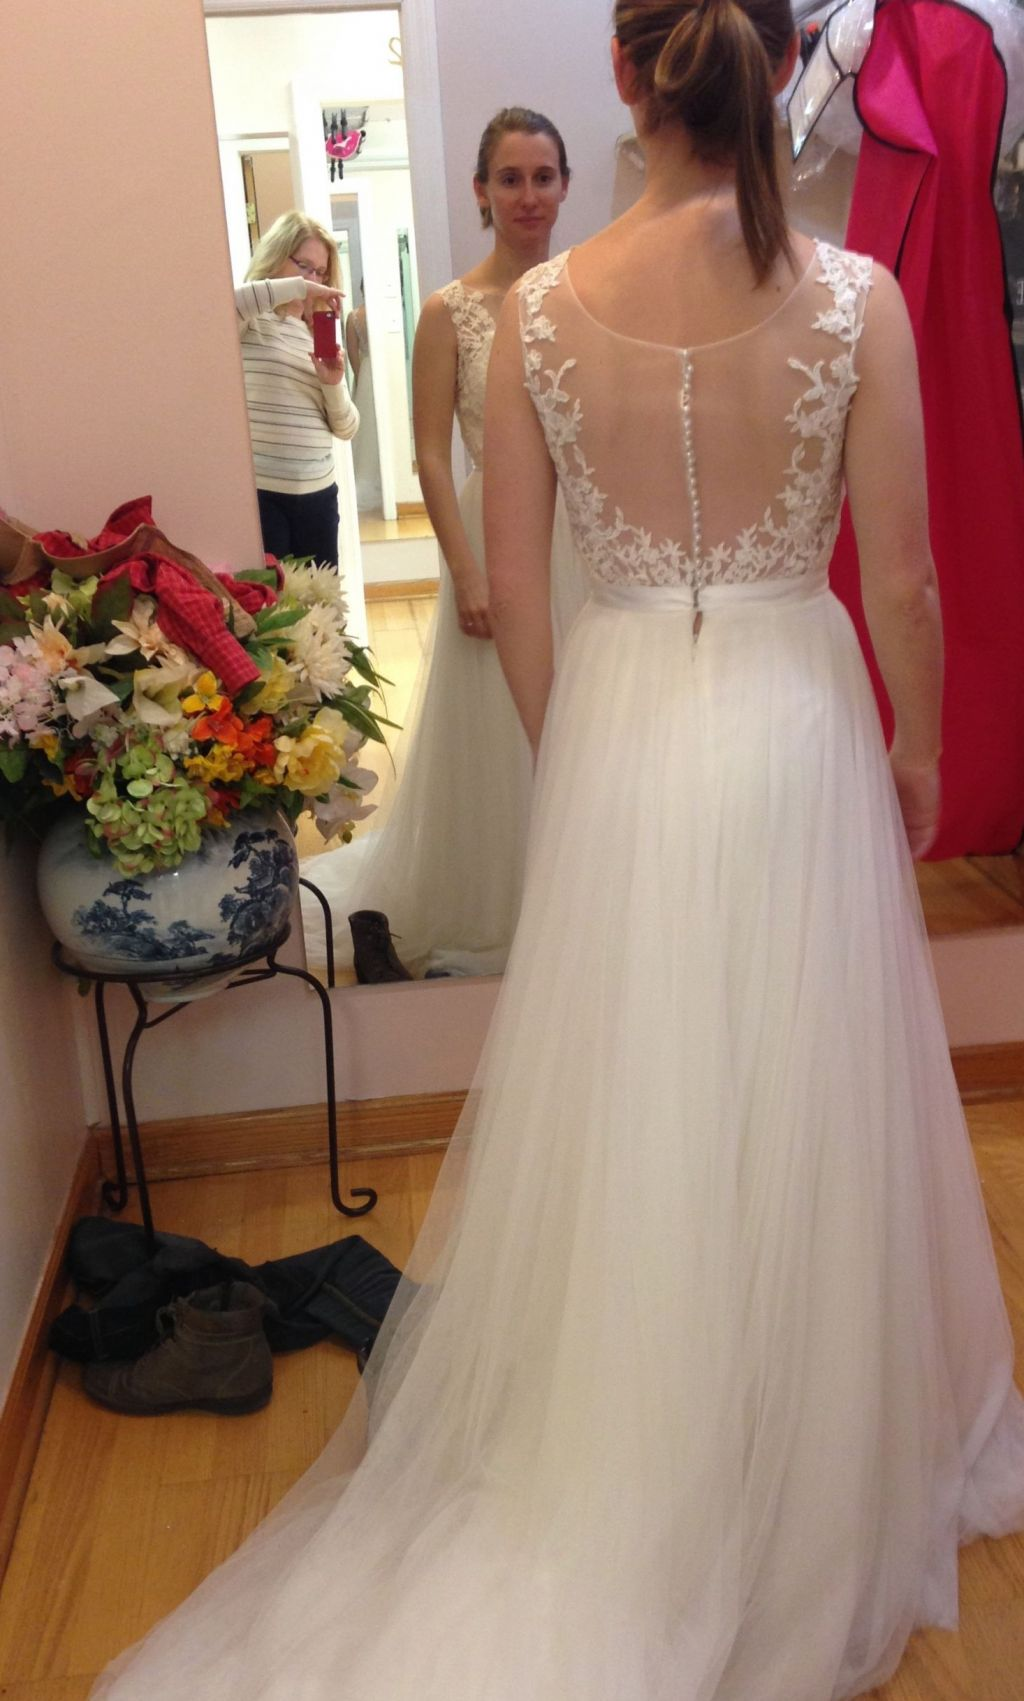 Wtoo marnie 14715 700 size 0 used wedding dresses for Used wedding dress size 0